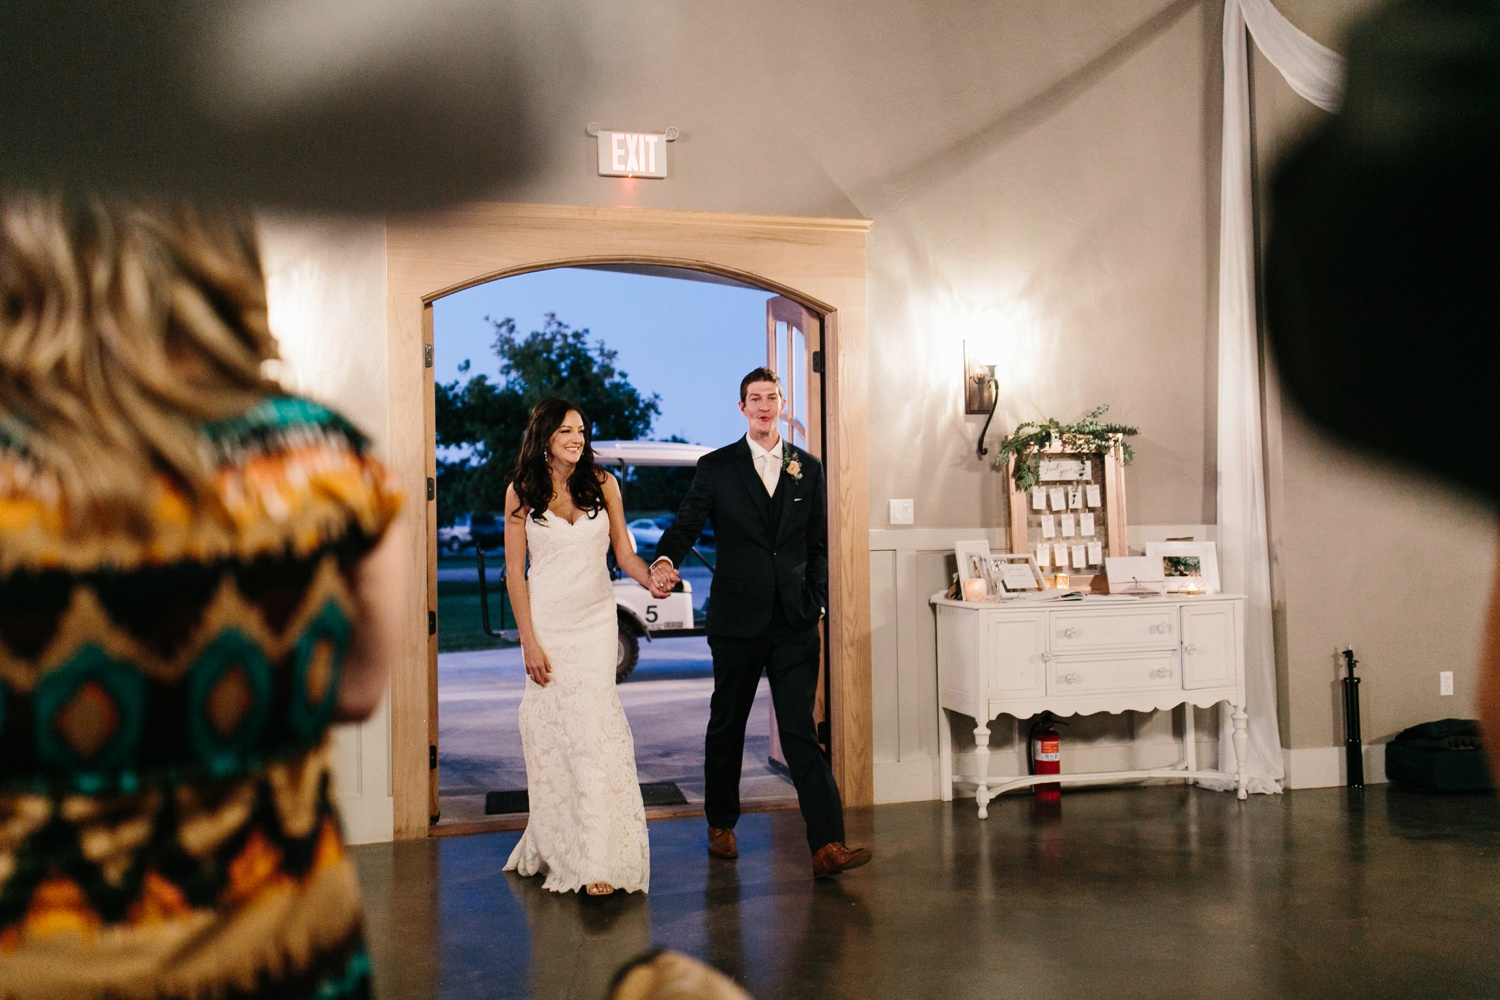 Erica + Henry | a bohemian inspired wedding at Chandlers Gardens in Salina, TX by North Texas Wedding Photographer Rachel Meagan Photography 130